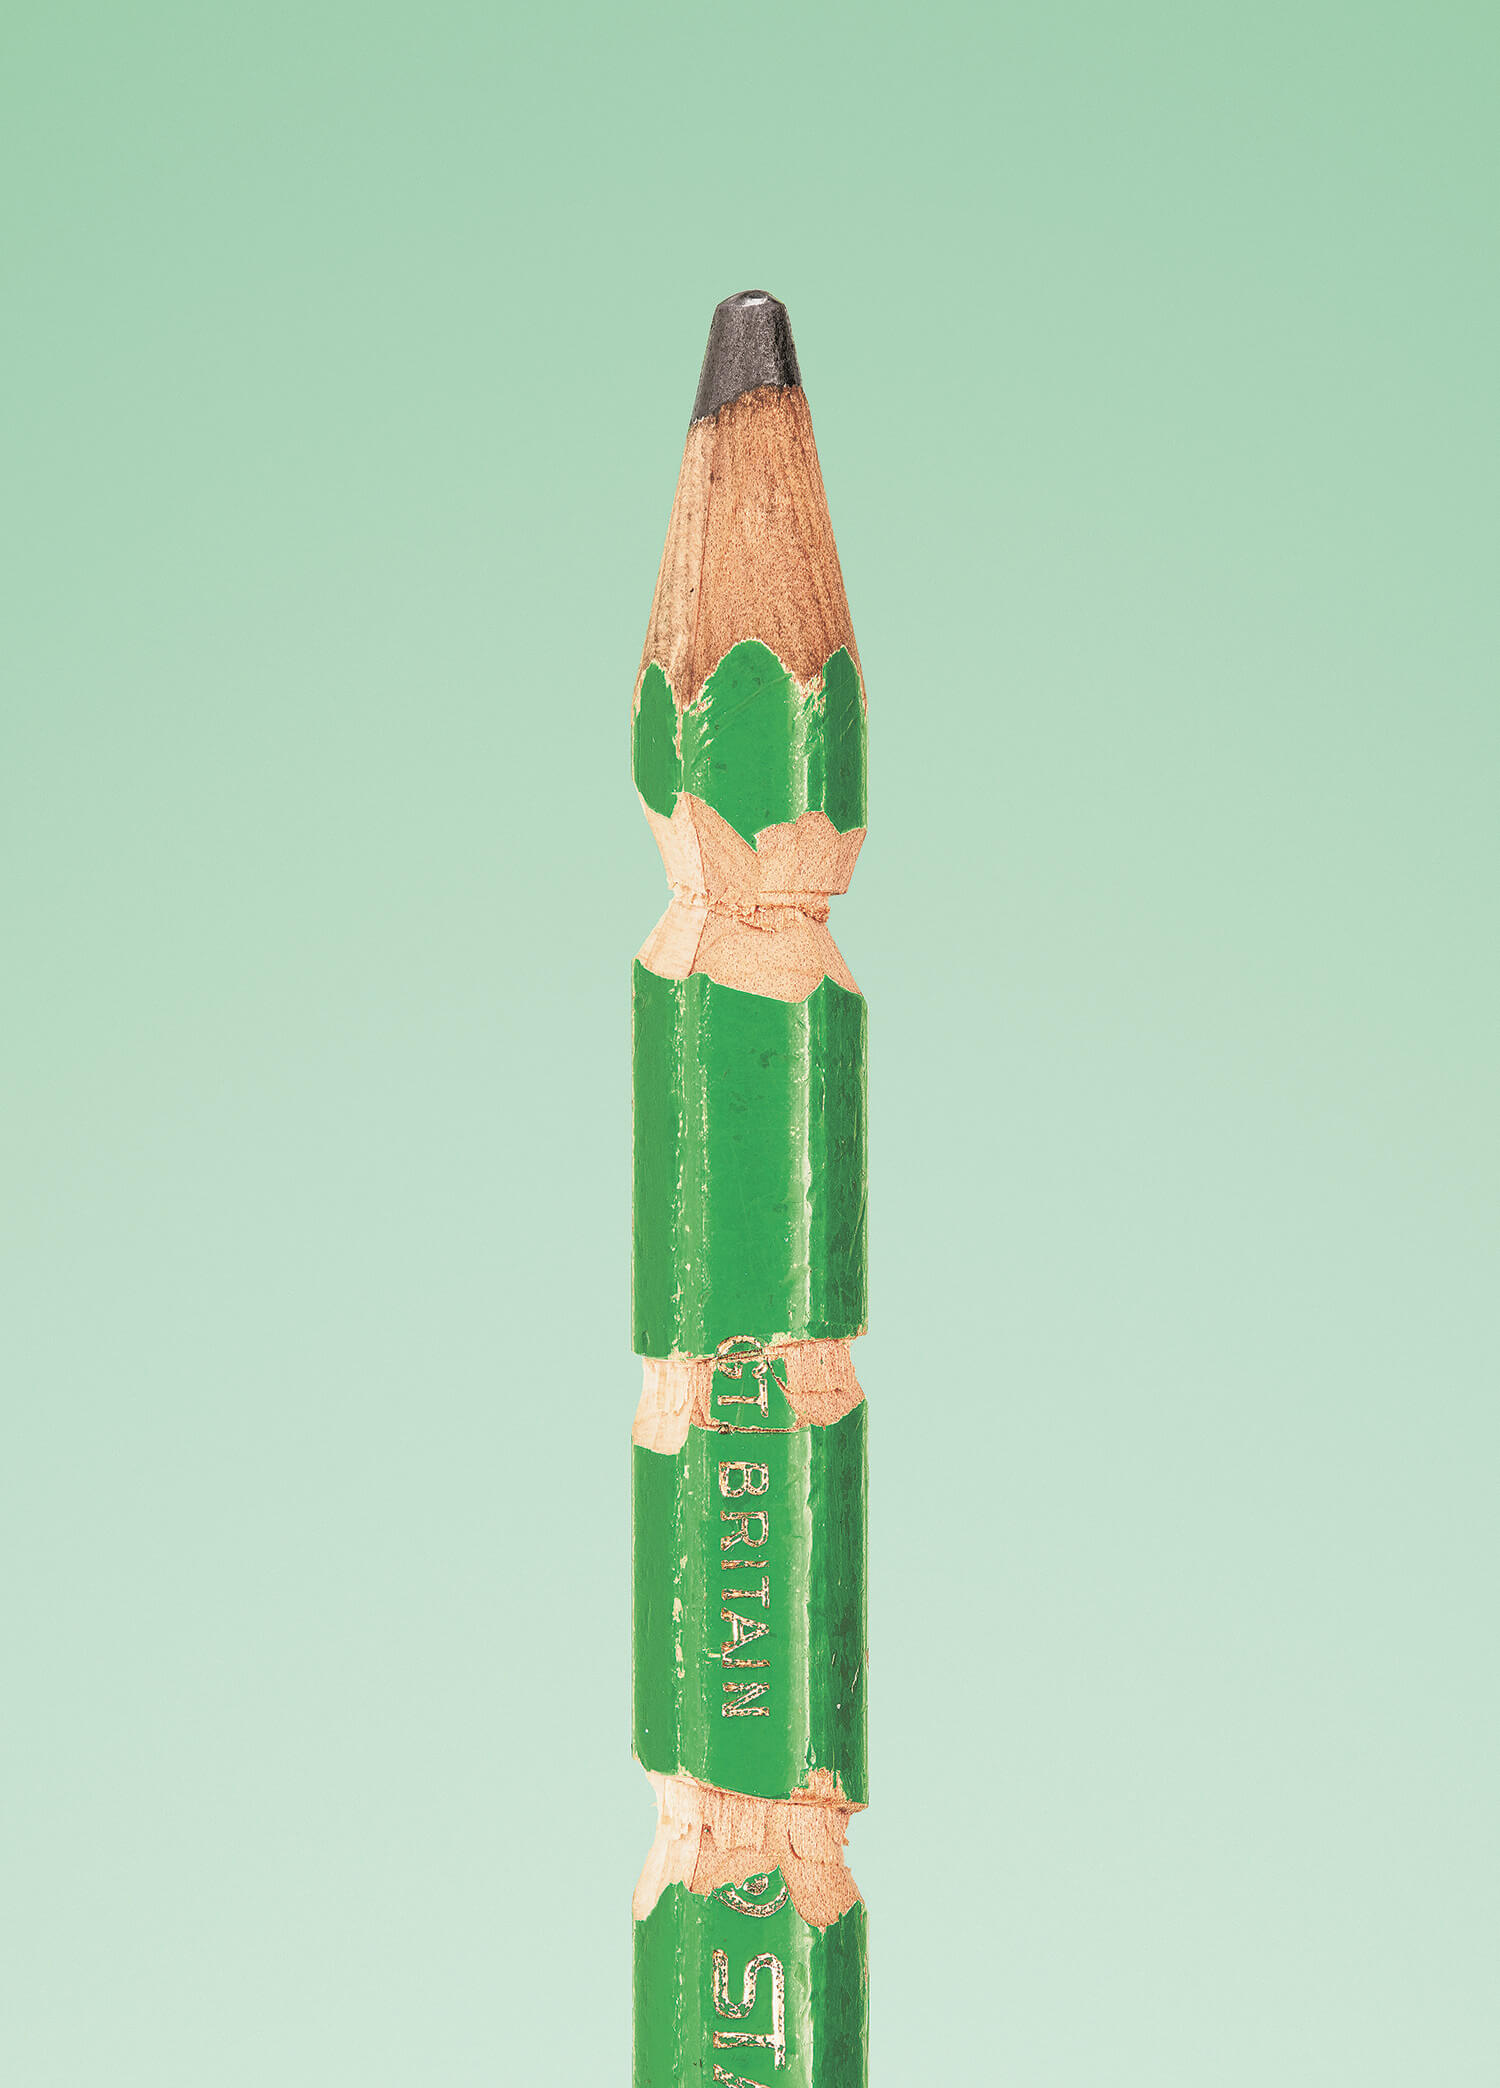 the secret life of the pencil fy 7 - The Secret Life of the Pencil: Portraits of Today's Artists as Seen Through Their Pencils